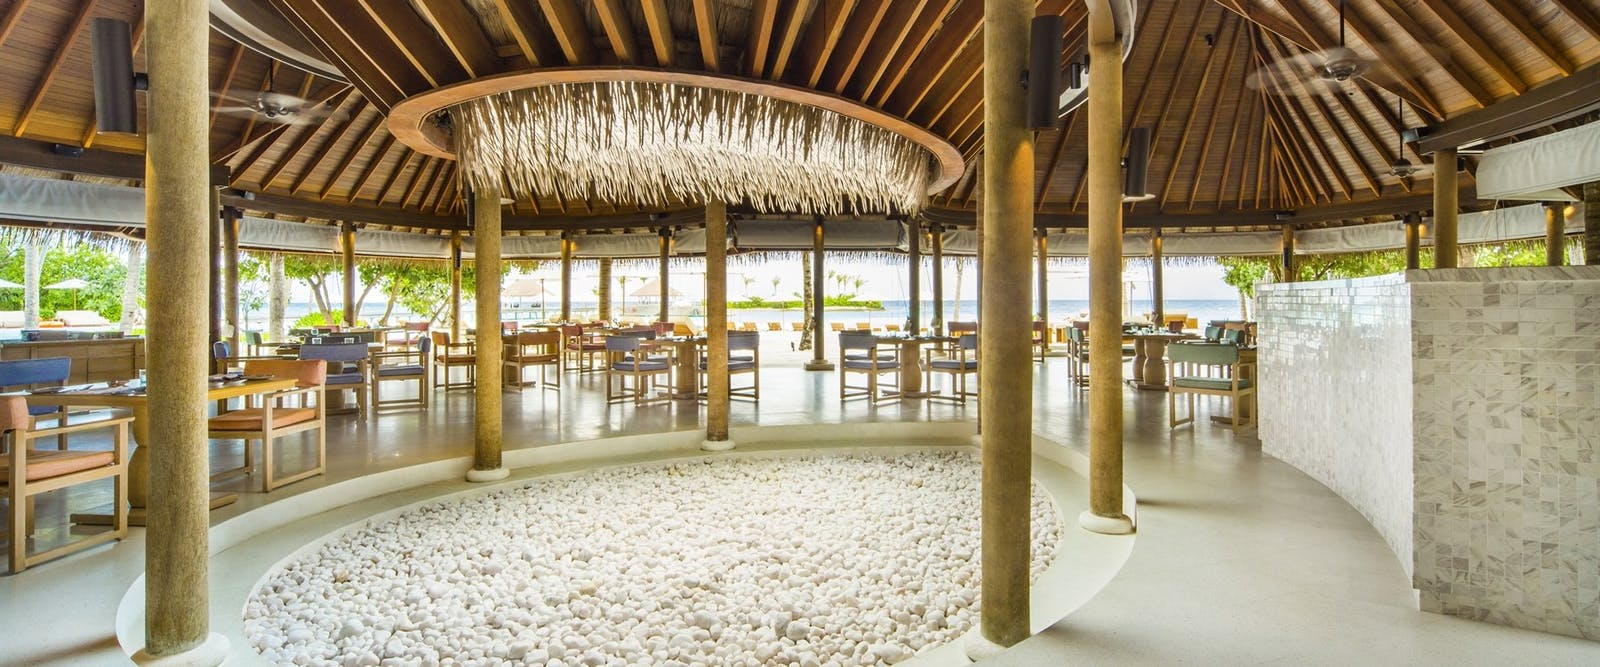 Madi Restaurant at COMO Maalifushi, Maldives, Indian Ocean